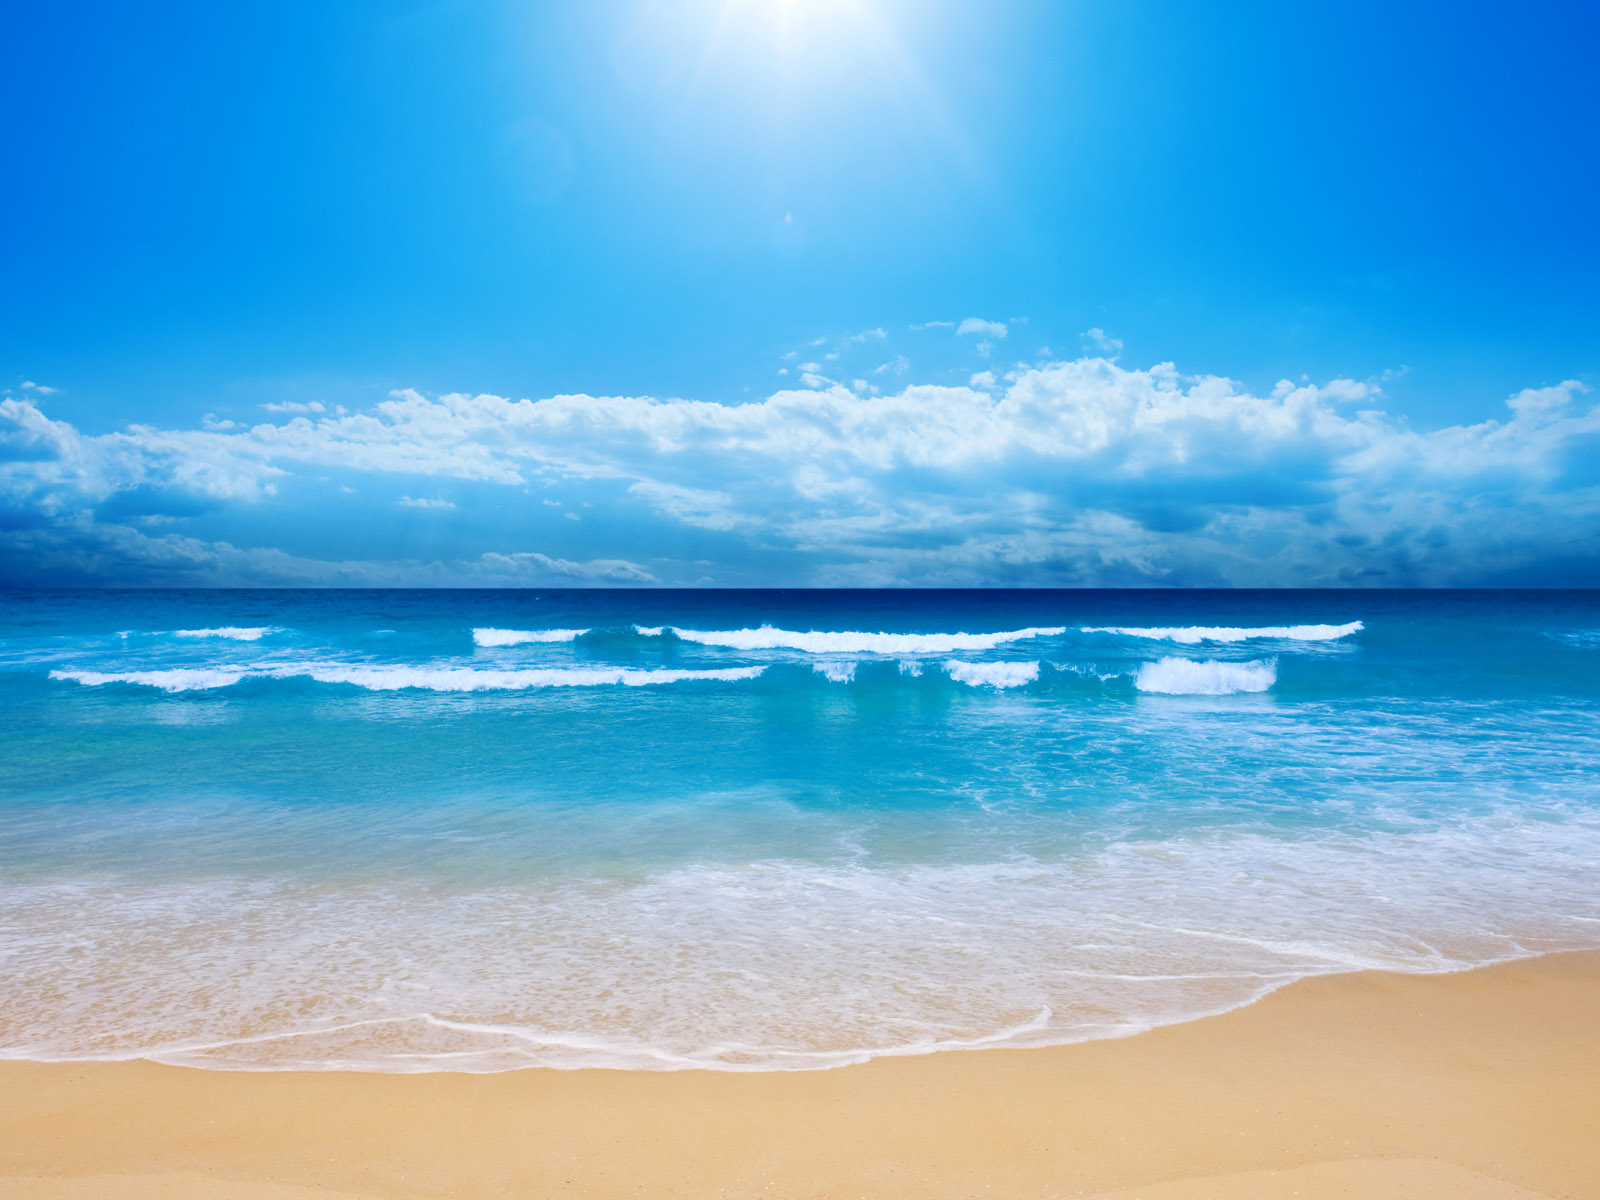 Place For HD Wallpapers Desktop Wallpapers Beach wallpapers 1600x1200